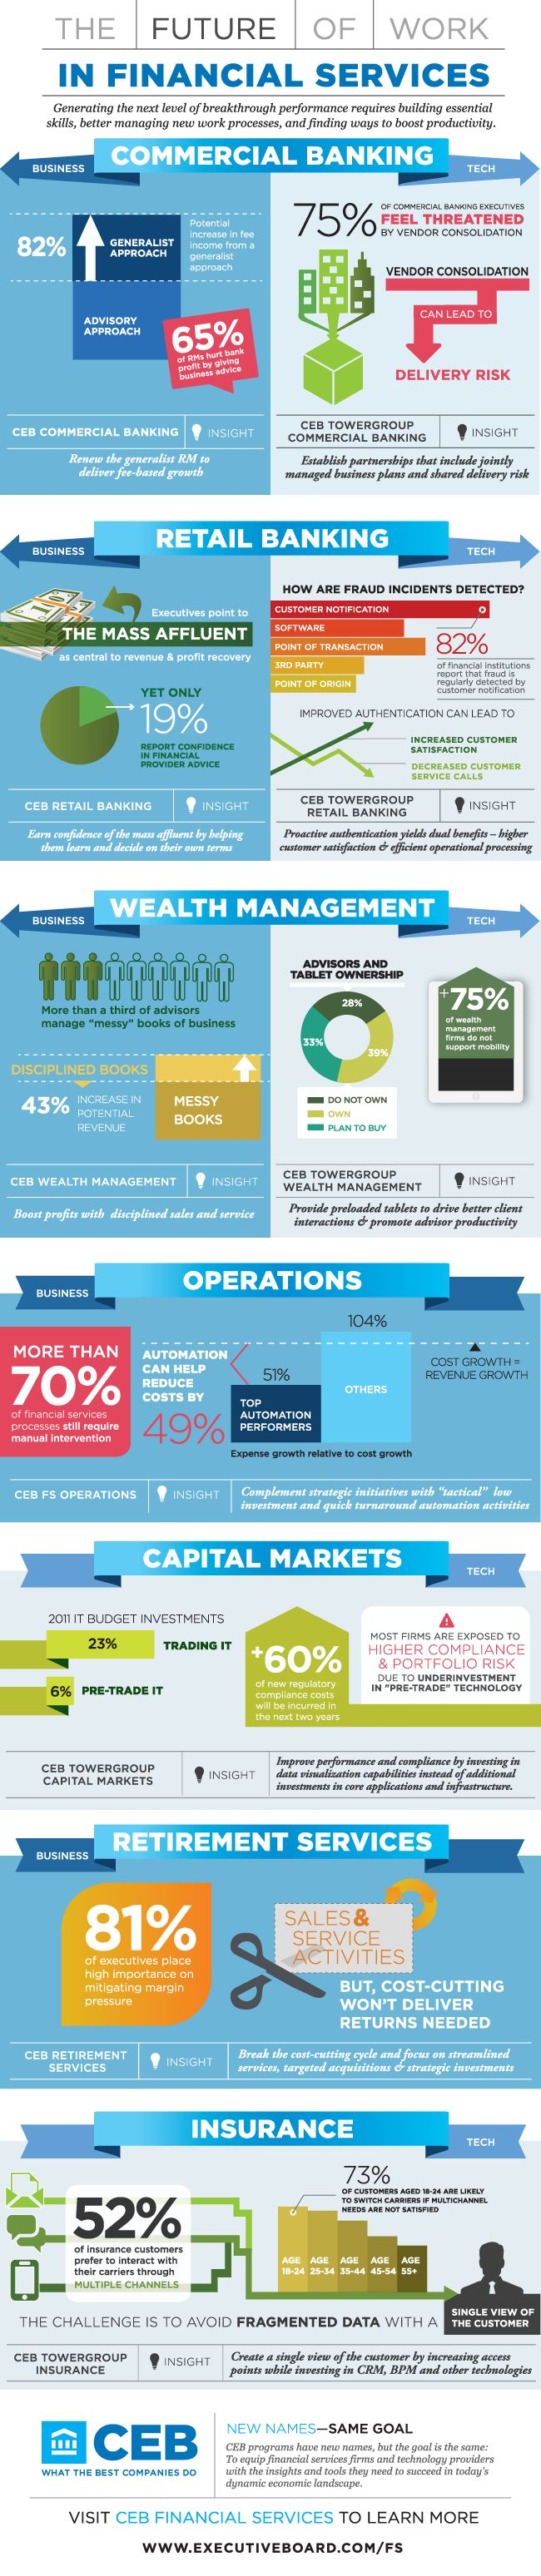 The Future Of Work In Financial Services | topic : productivity | infographic | link | ram2013